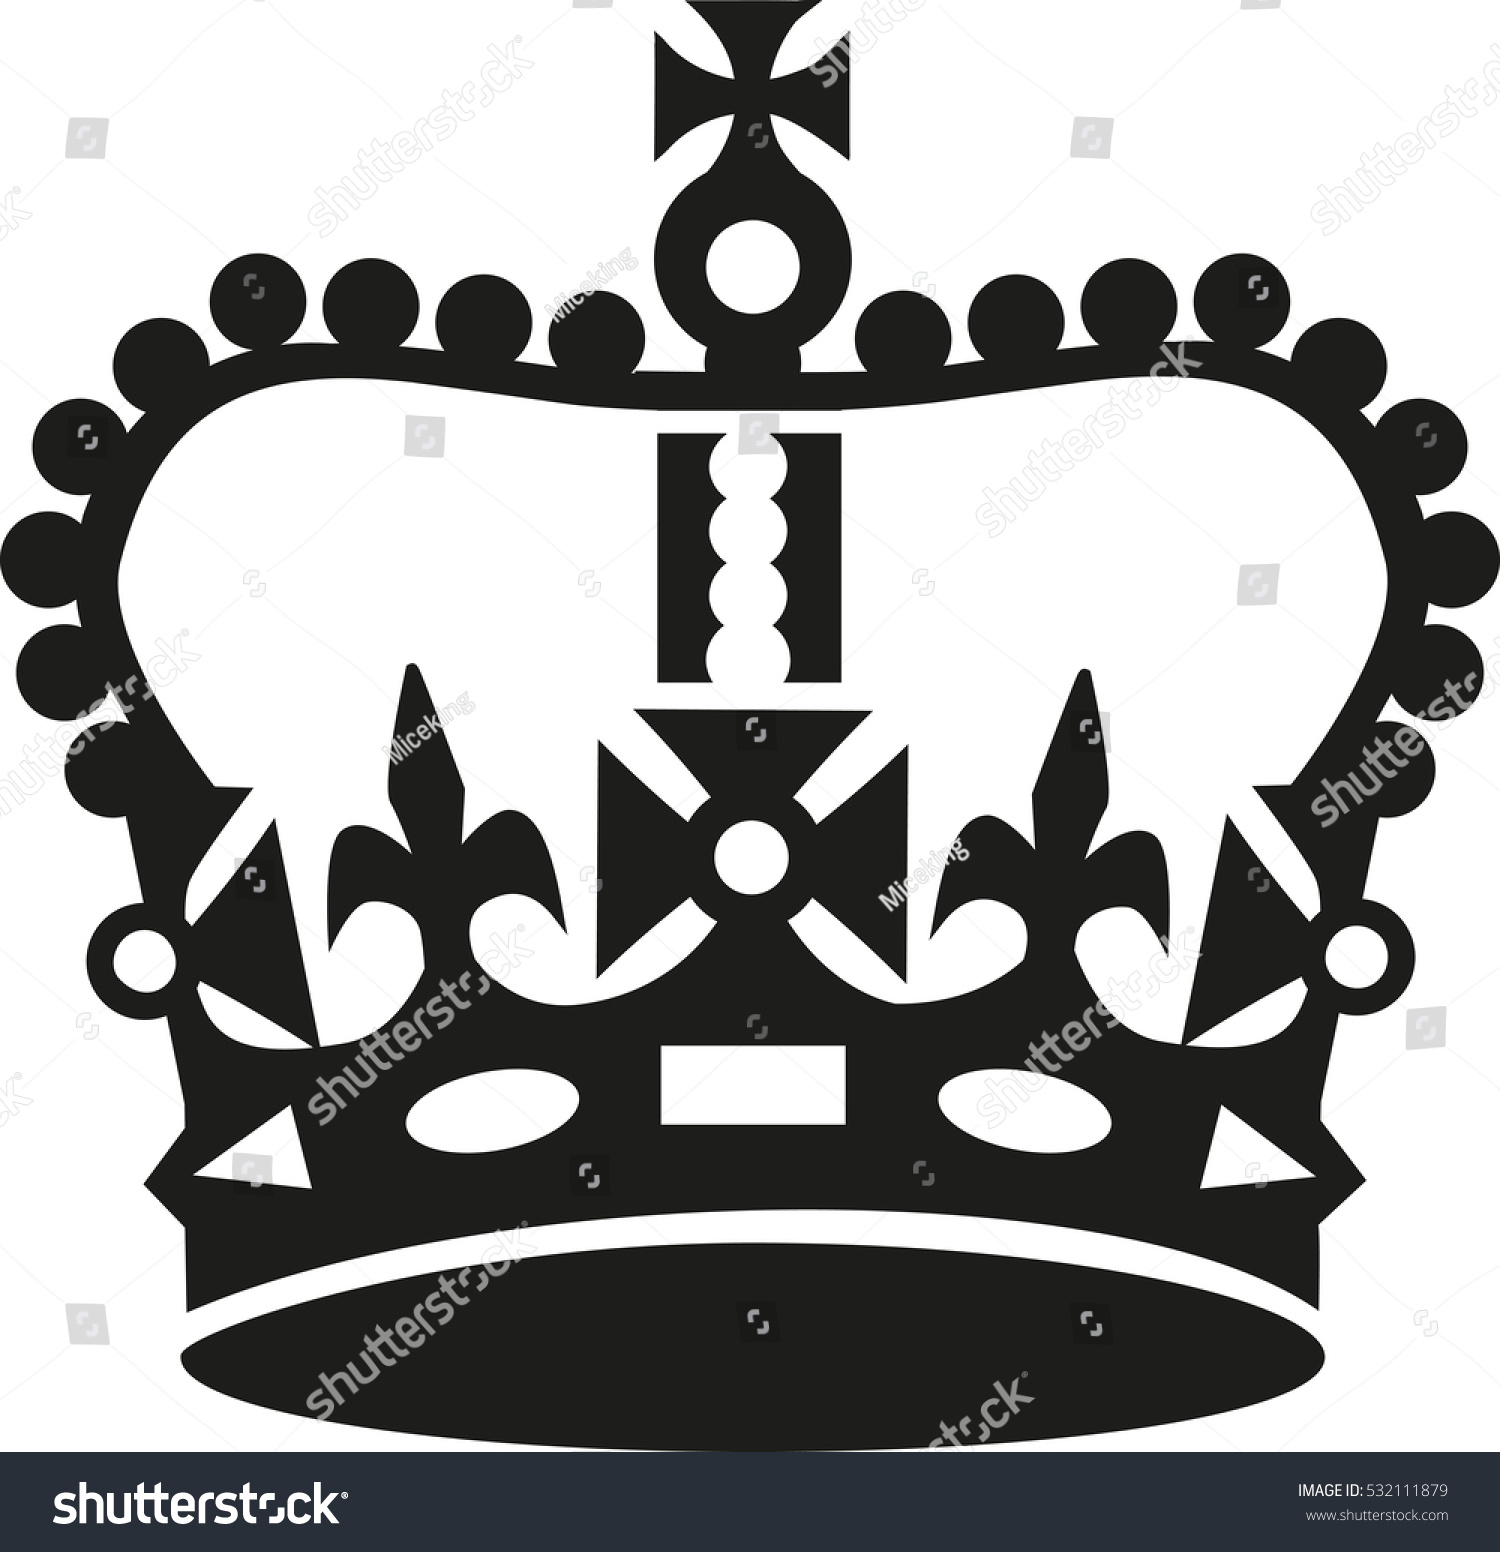 crown keep calm style stock vector 2018 532111879 shutterstock rh shutterstock com keep calm crown vector png keep calm crown vector cdr